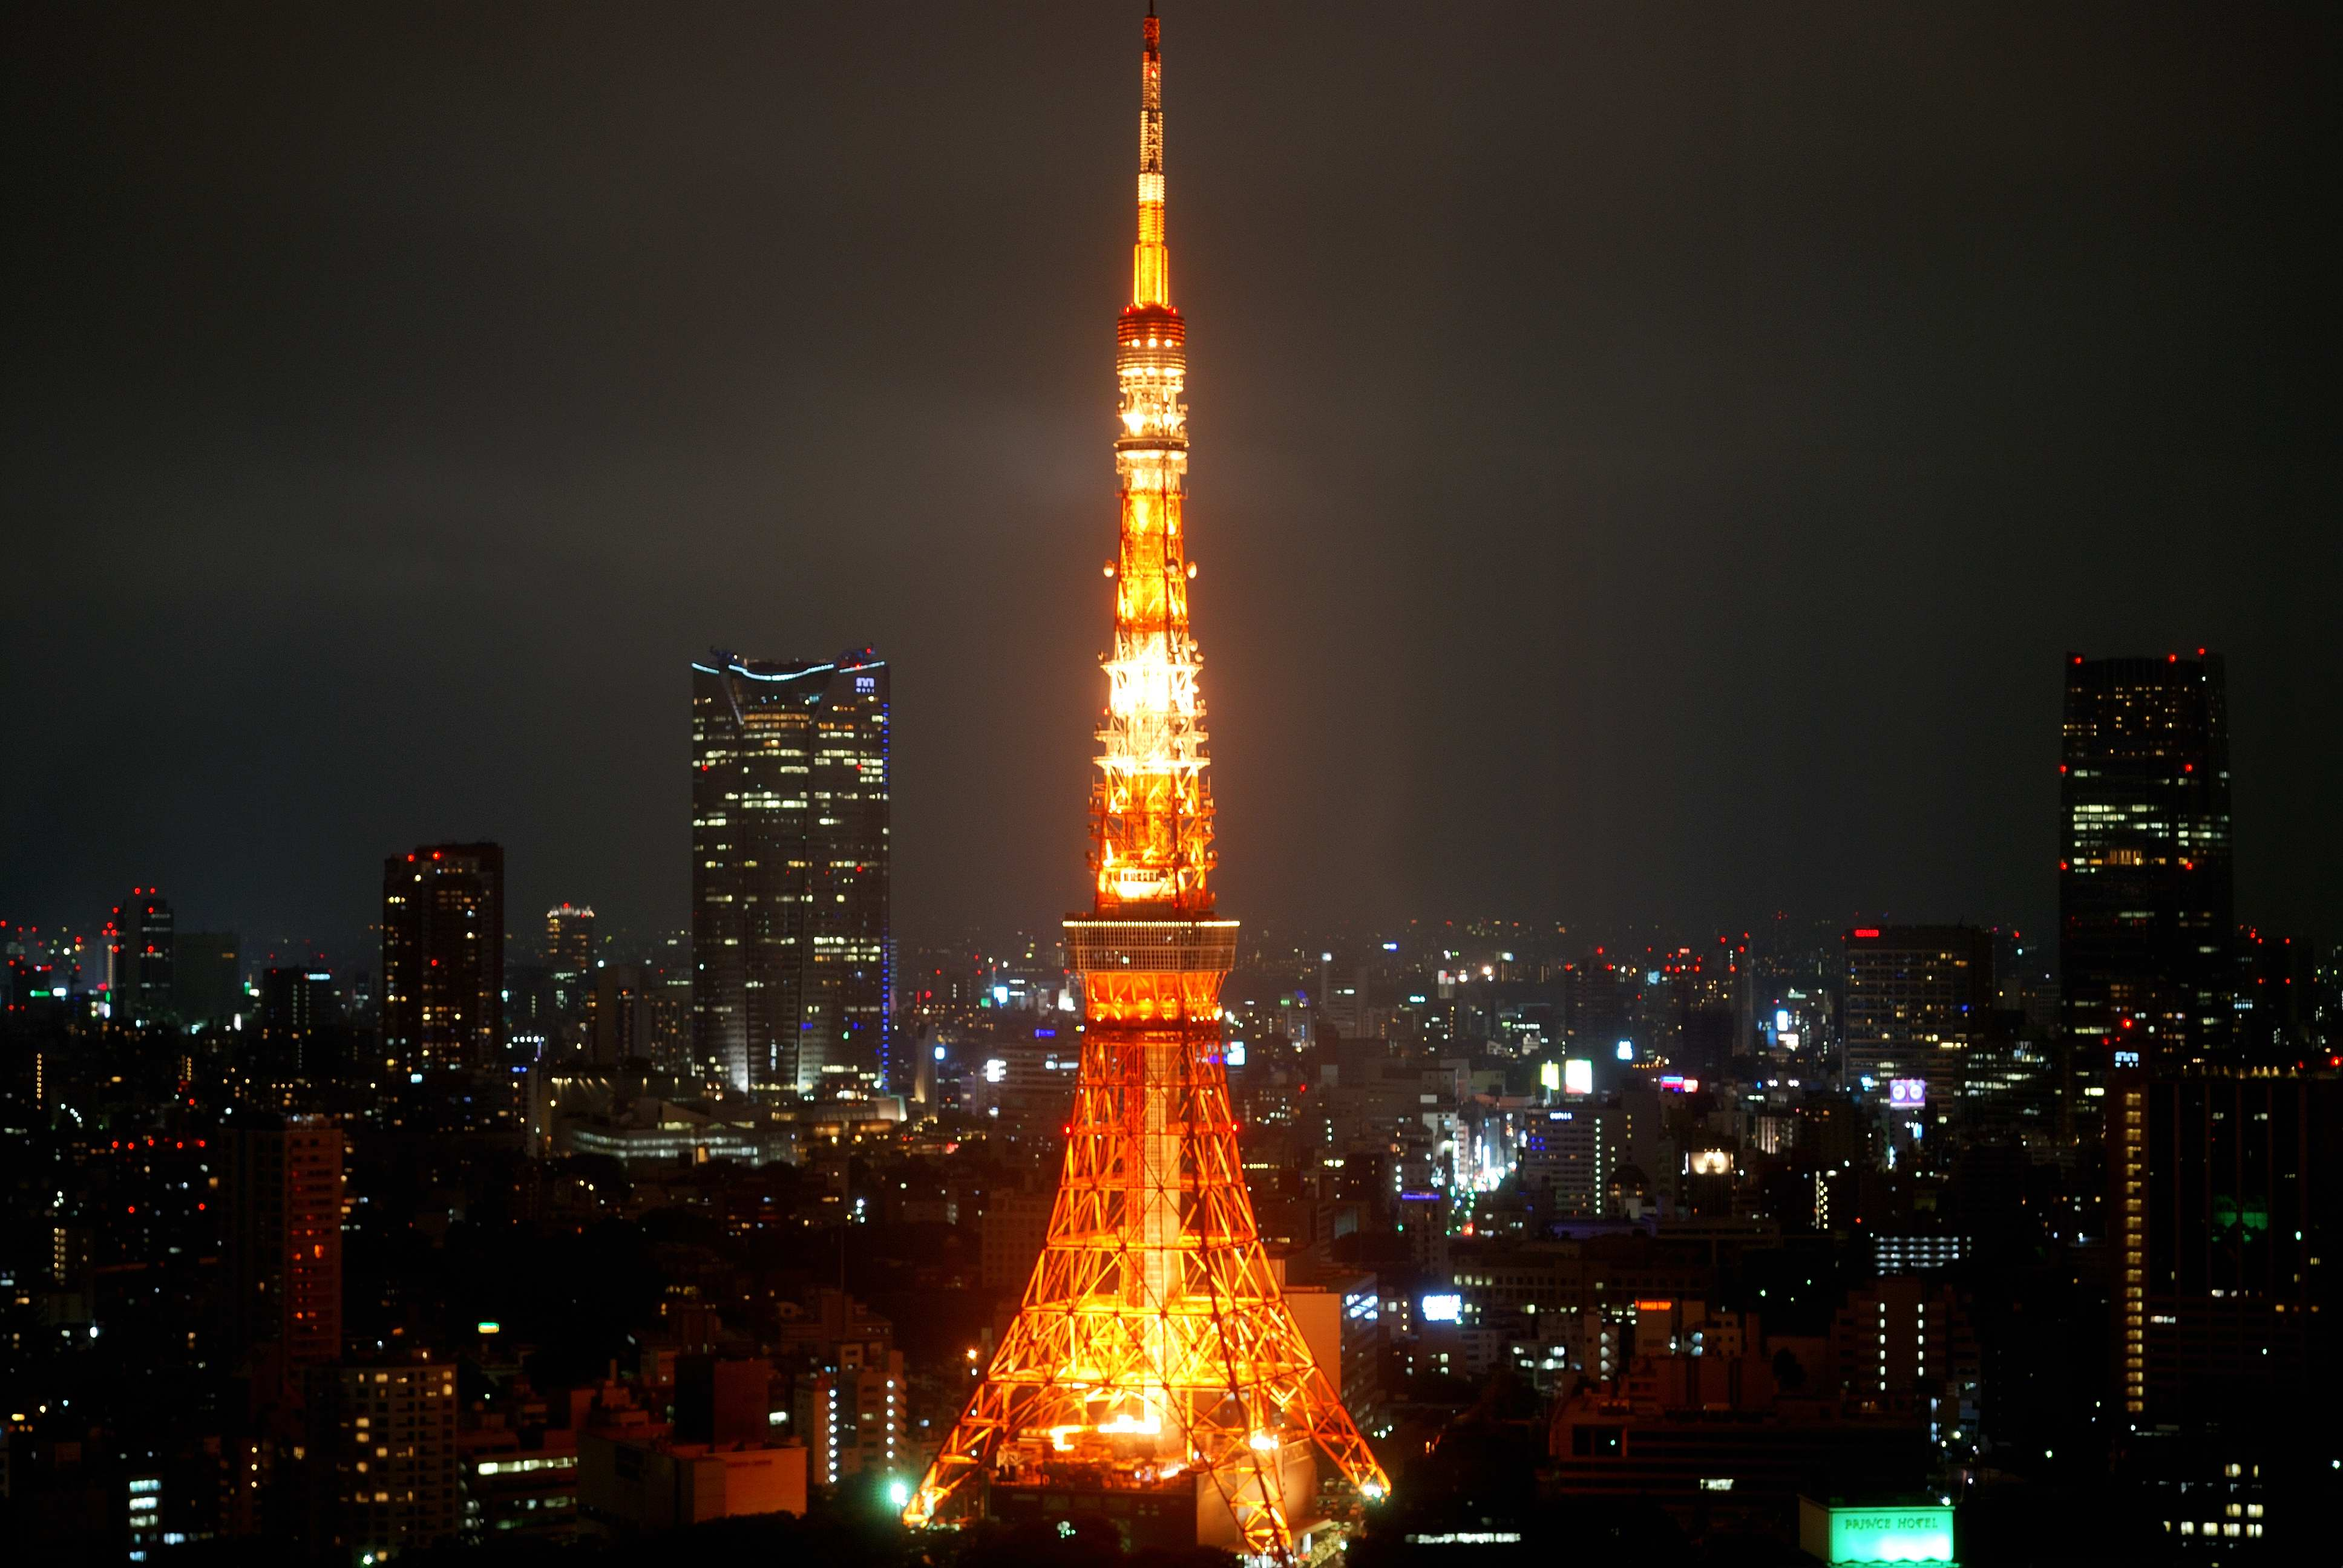 https://i0.wp.com/upload.wikimedia.org/wikipedia/commons/d/d4/Tokyo_tower_world_trade.jpg